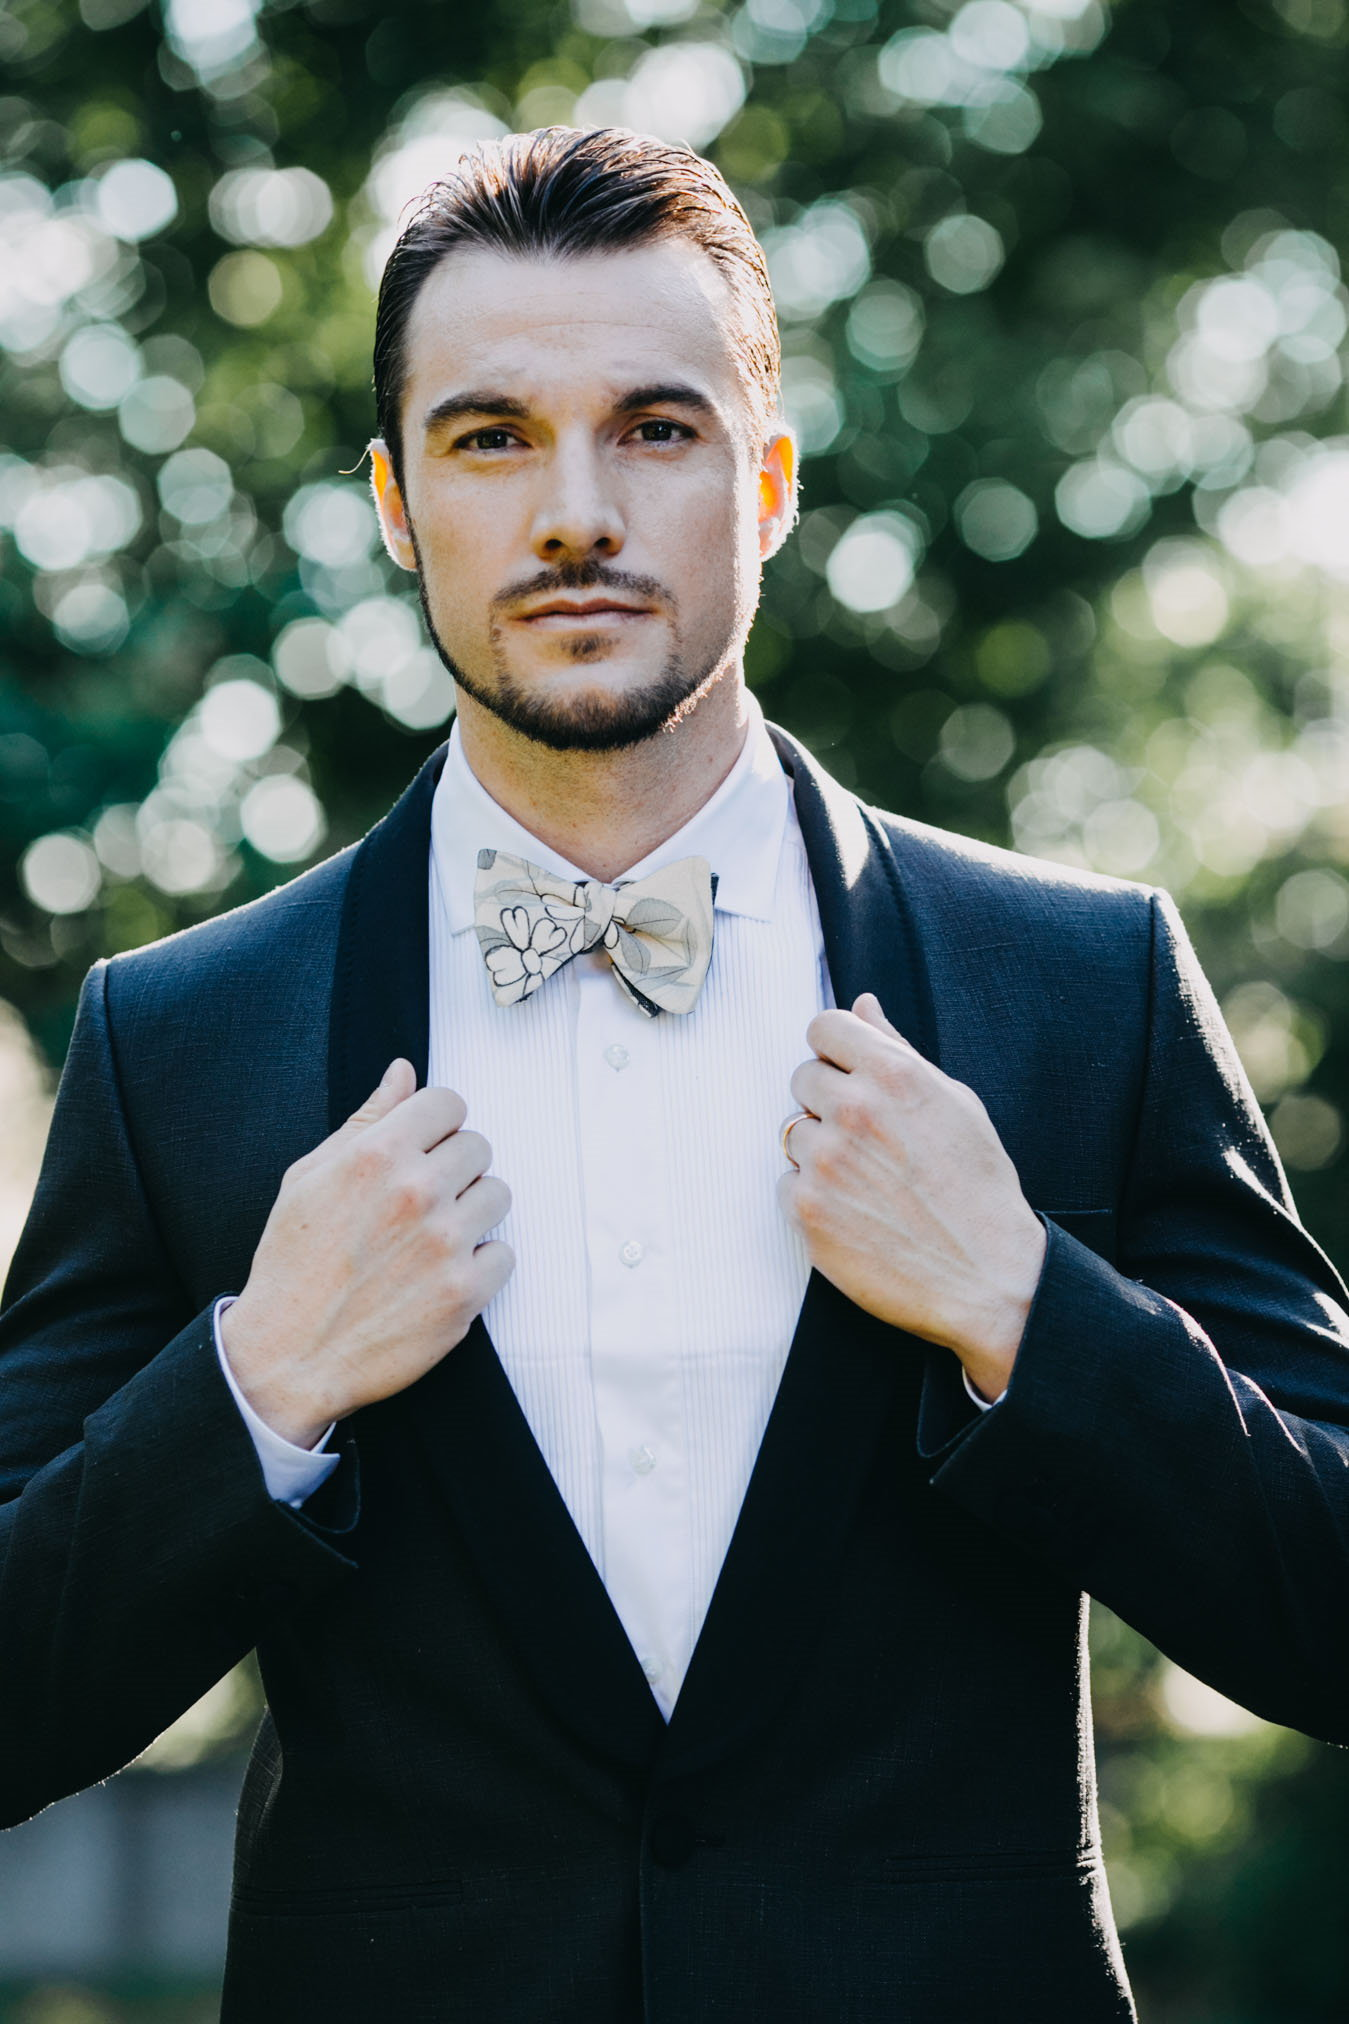 groom's tuxedo for the ceremony and original bow tie in Japanese silk